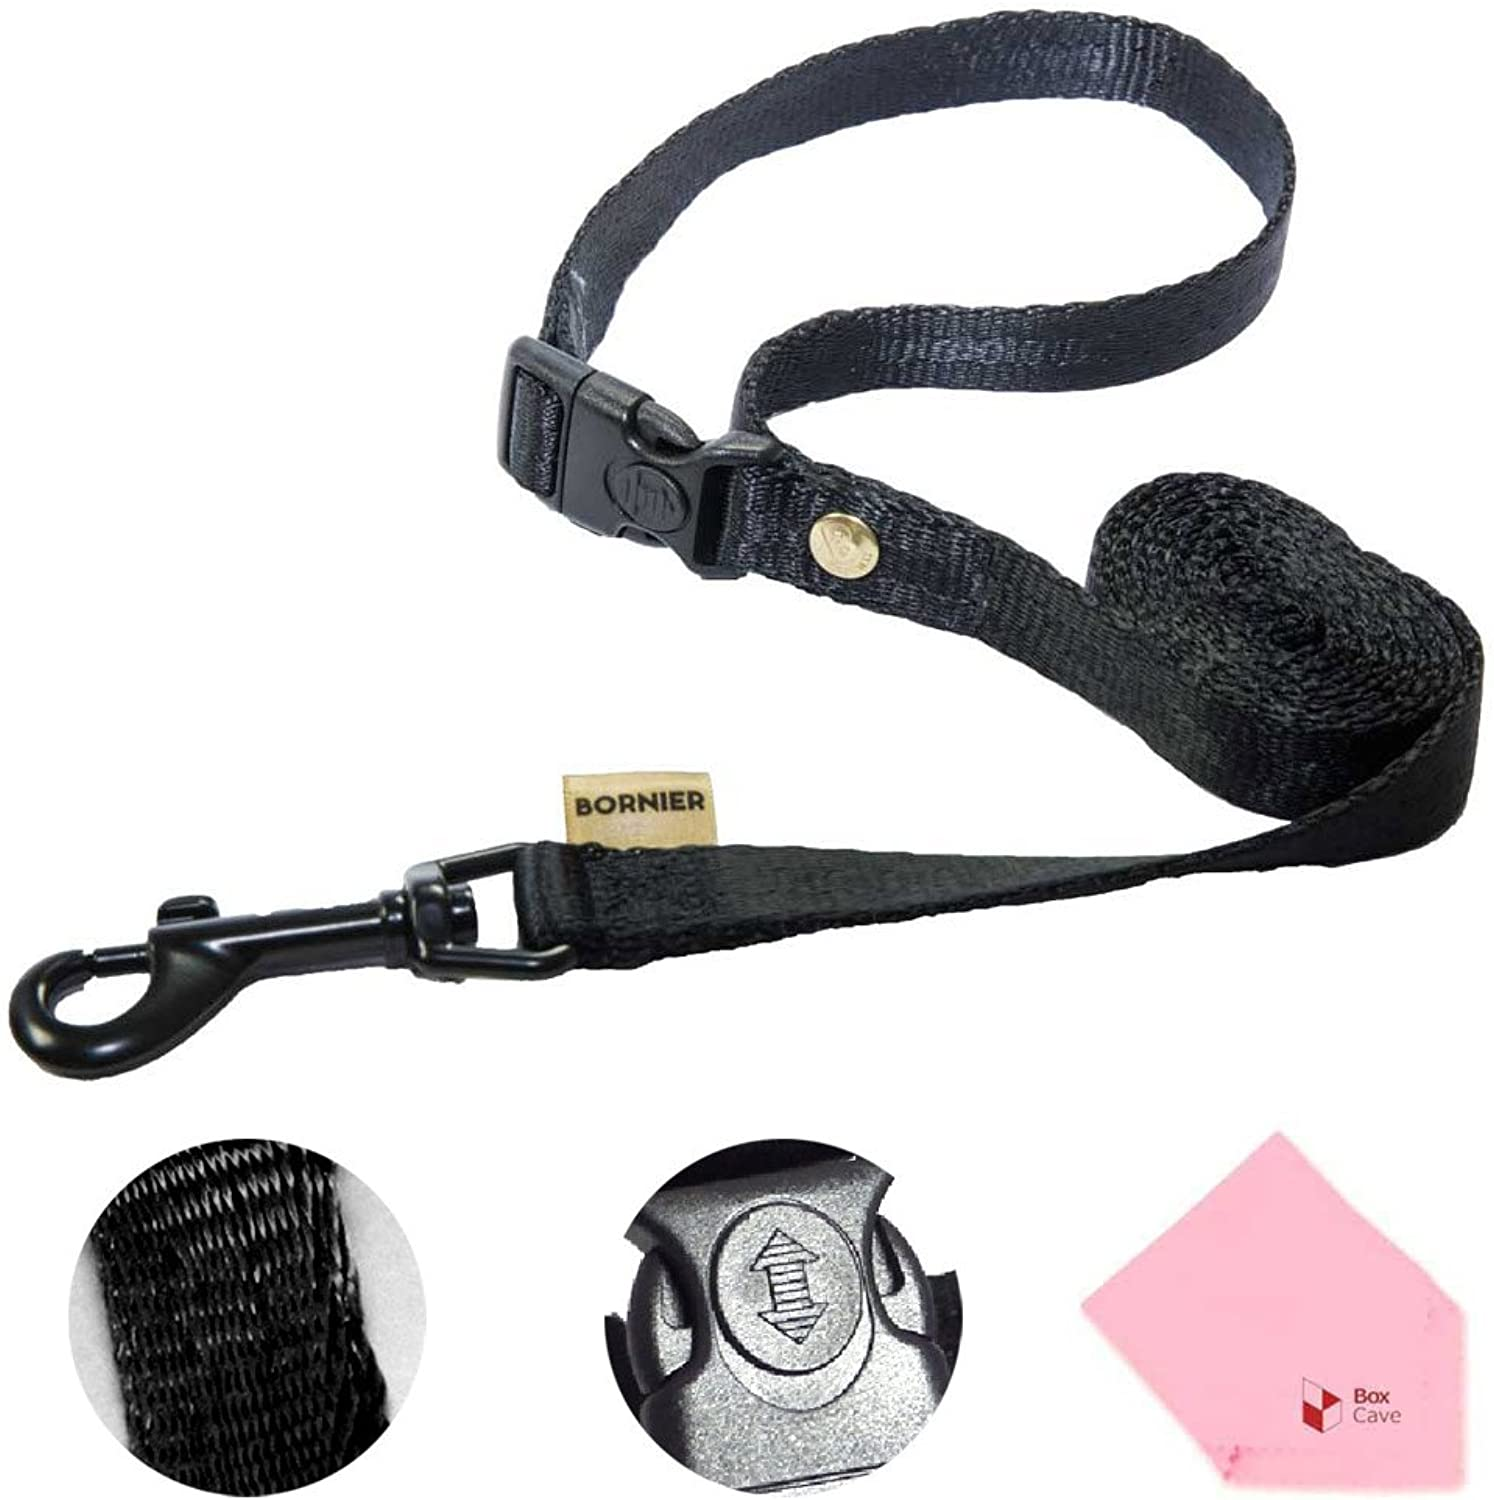 BORNIER Smart Dog Smooth Walking Leash with Quick Release Buckles, 47.2'' Length (Comes W BoxCave Microfiber Cleaning Cloth) (L, Black)